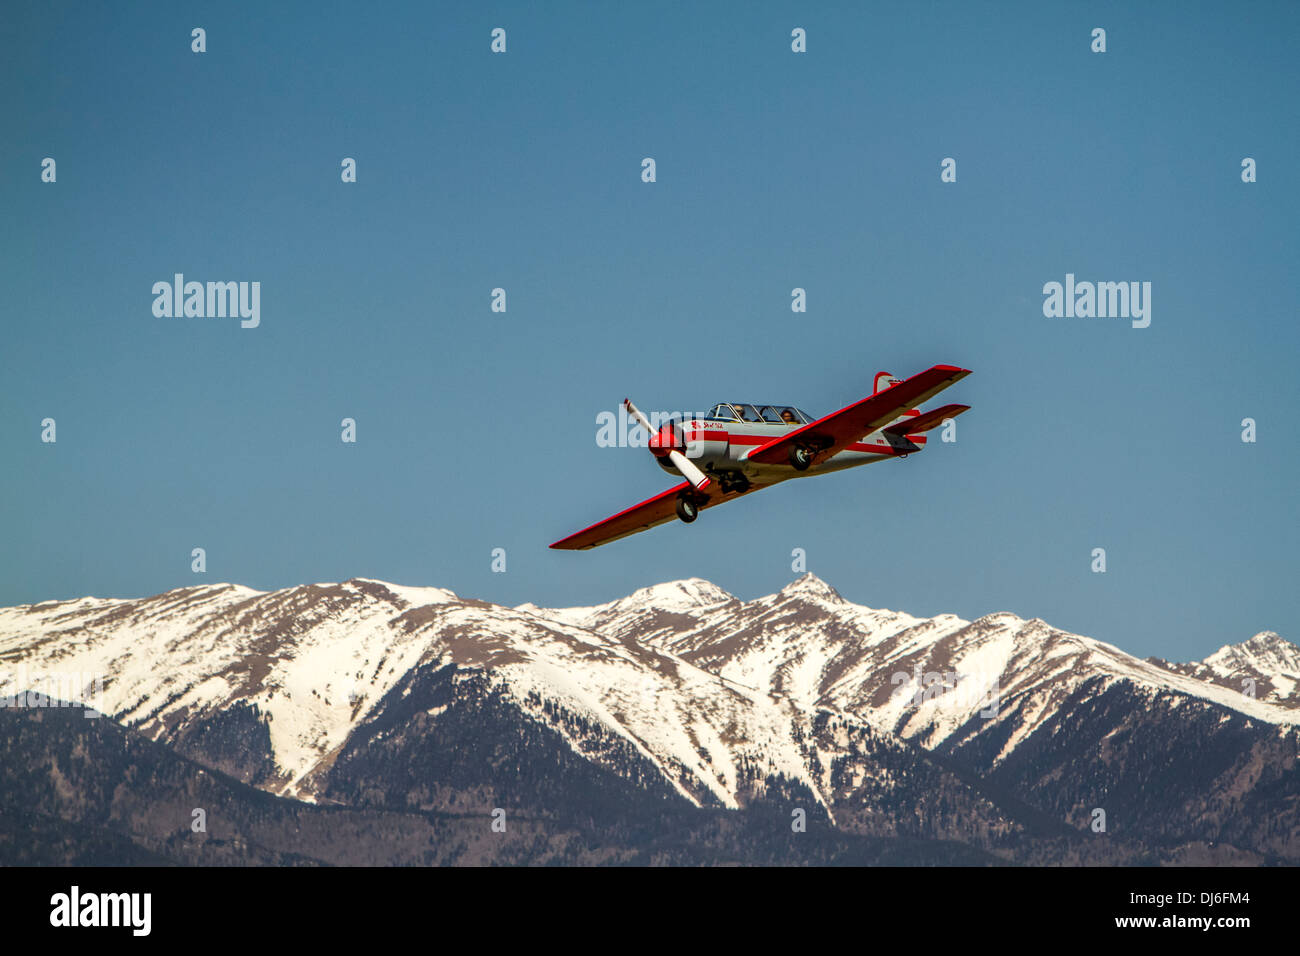 Airplane flying over the mountains. - Stock Image